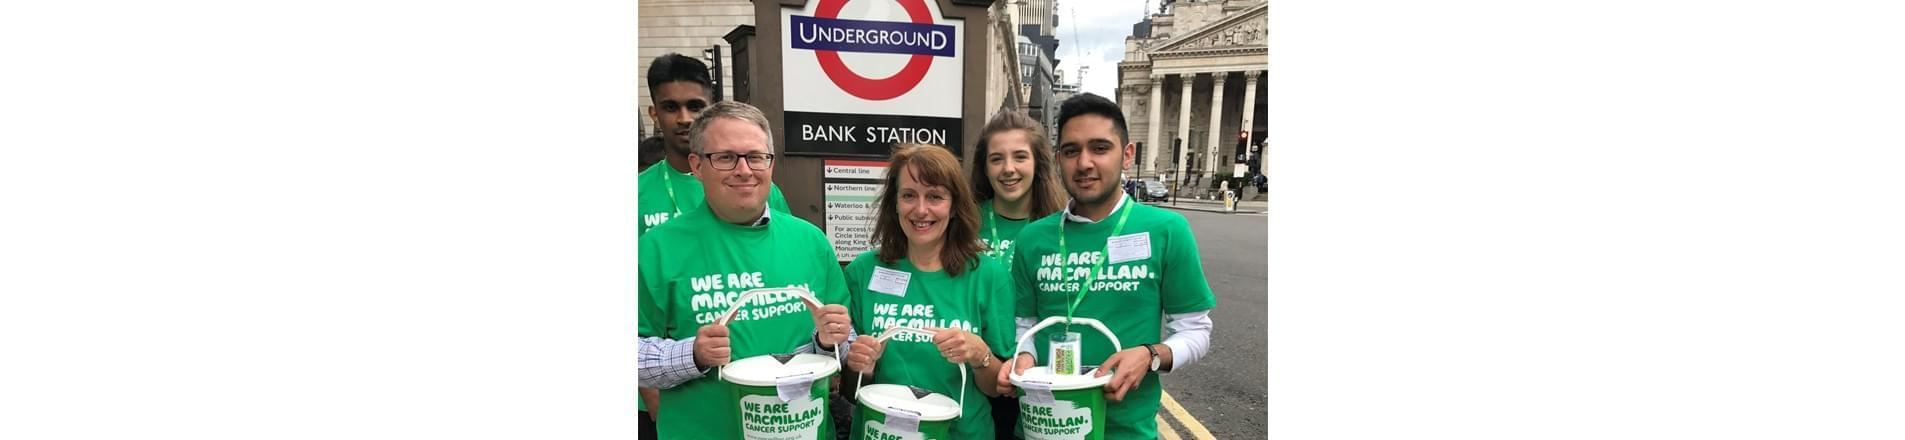 Volunteers from Bank of England collecting money for MacMillan Cancer